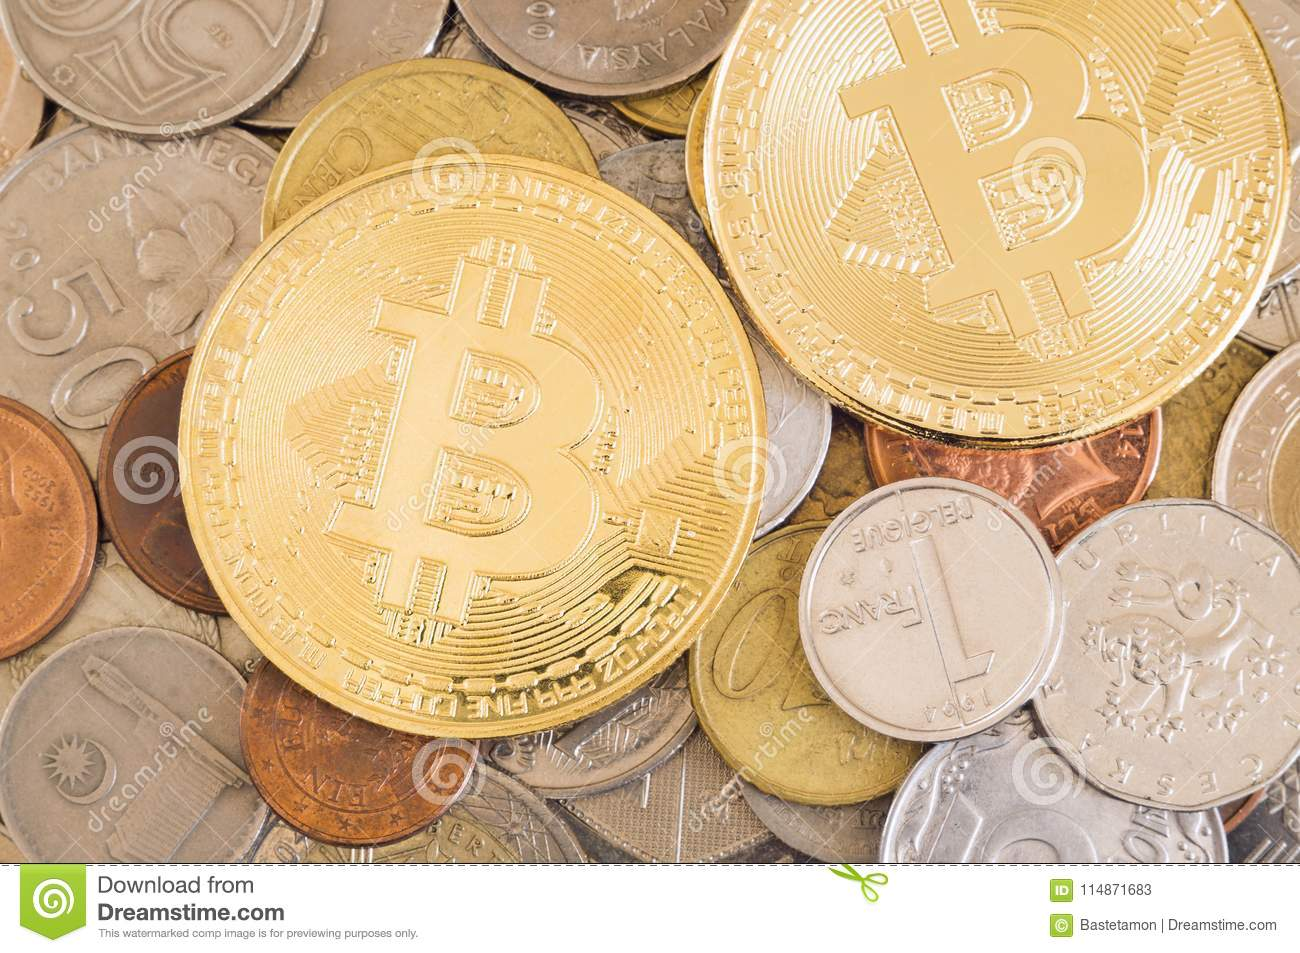 Bitcoins and other coins